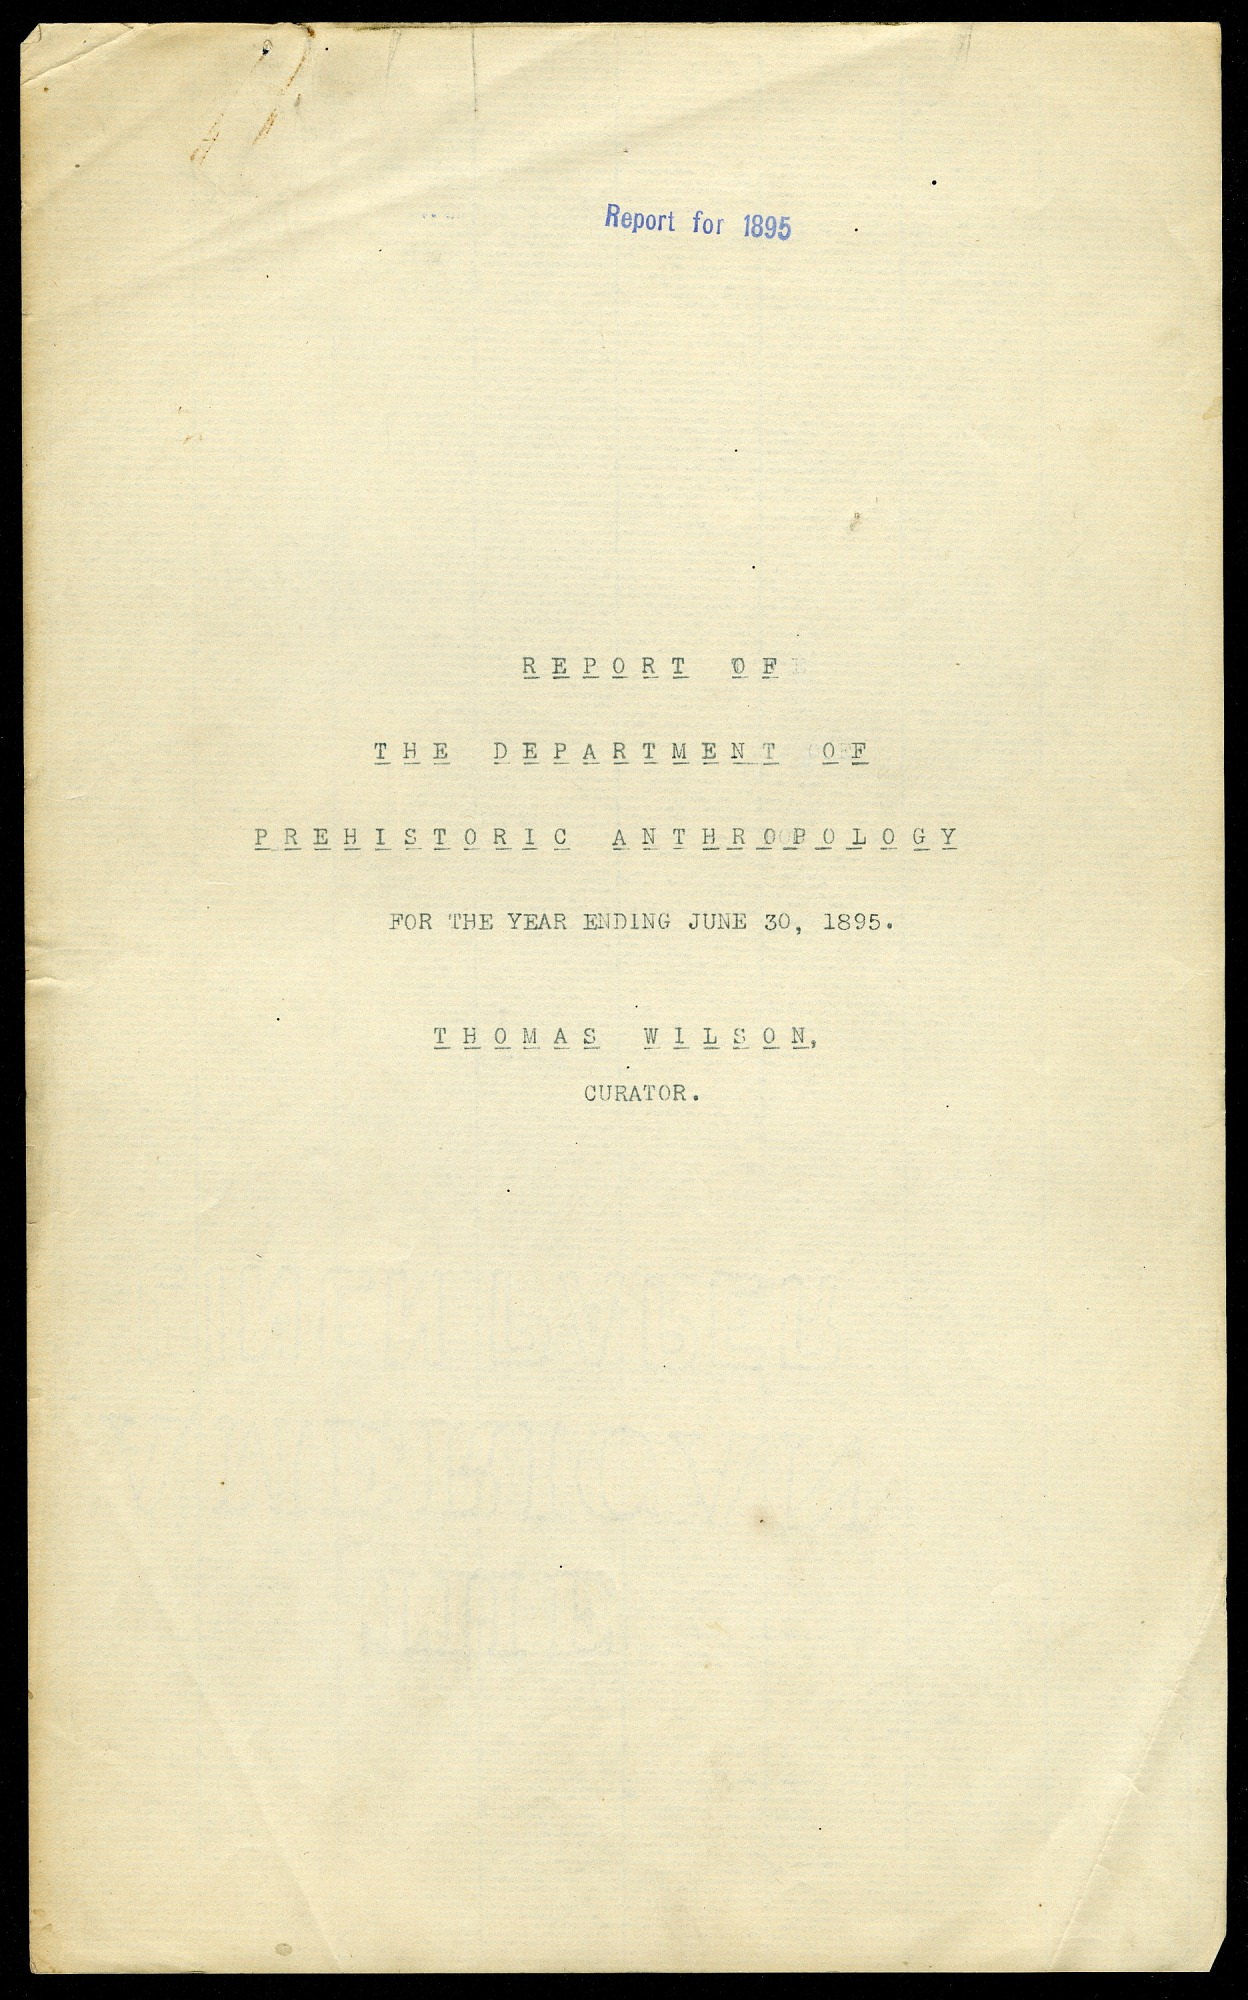 Department of Prehistoric Anthropology: Annual Report 1894 - 1895